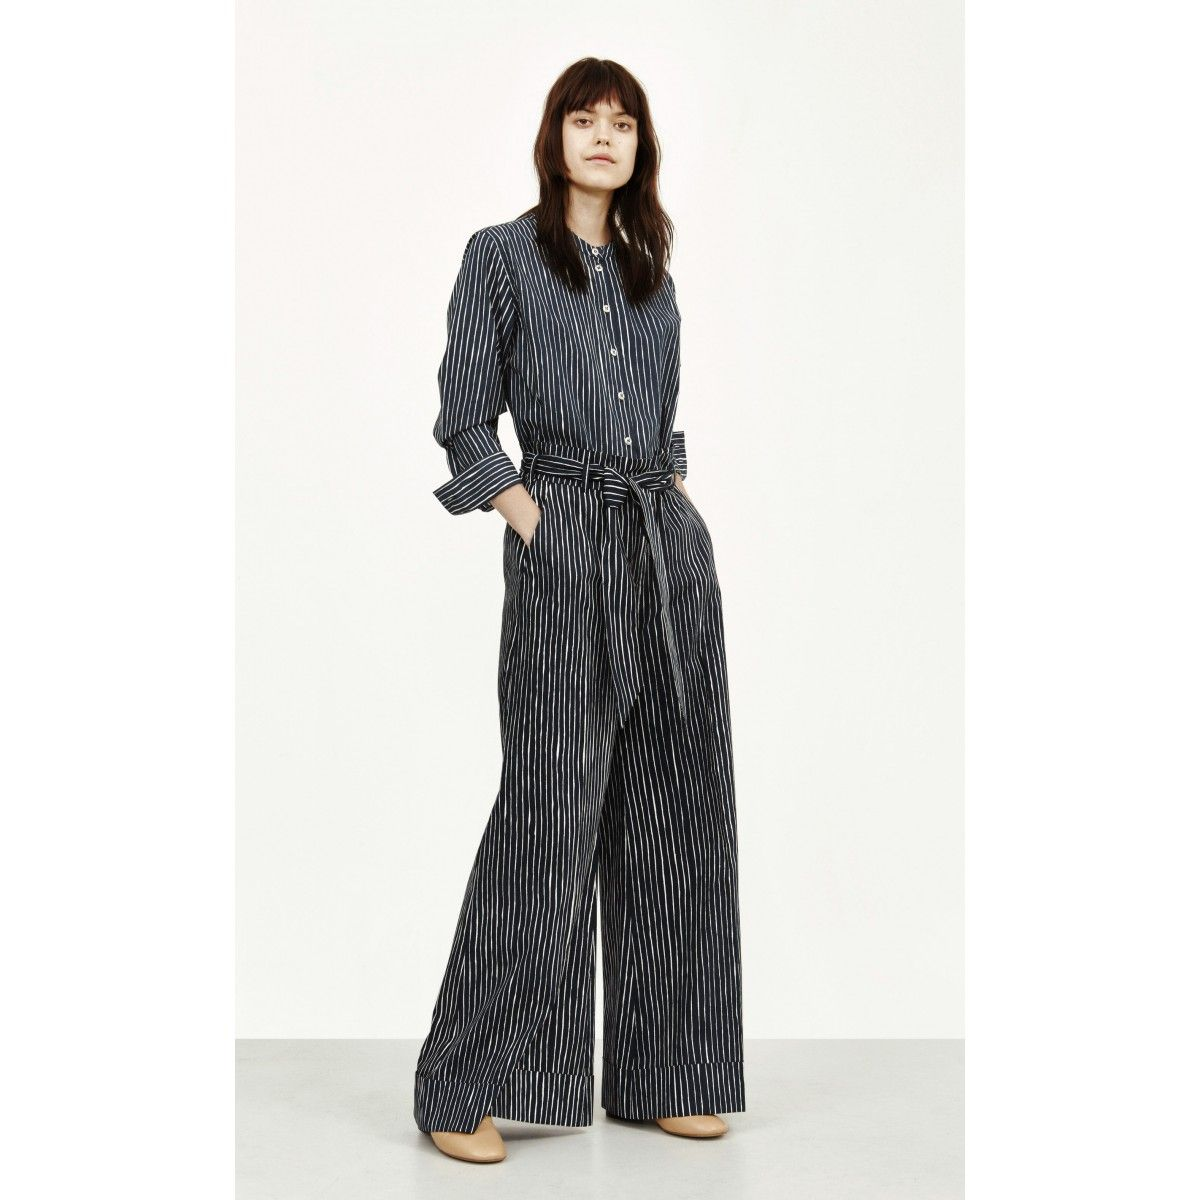 These flat front trousers are made of crisp cotton poplin and feature the Aita print of hand-drawn stripes. They have front diagonal slit pockets and a hidden front clasp and zip front closure. The leg is cut extra wide with a cuff at the hem. Belt loops